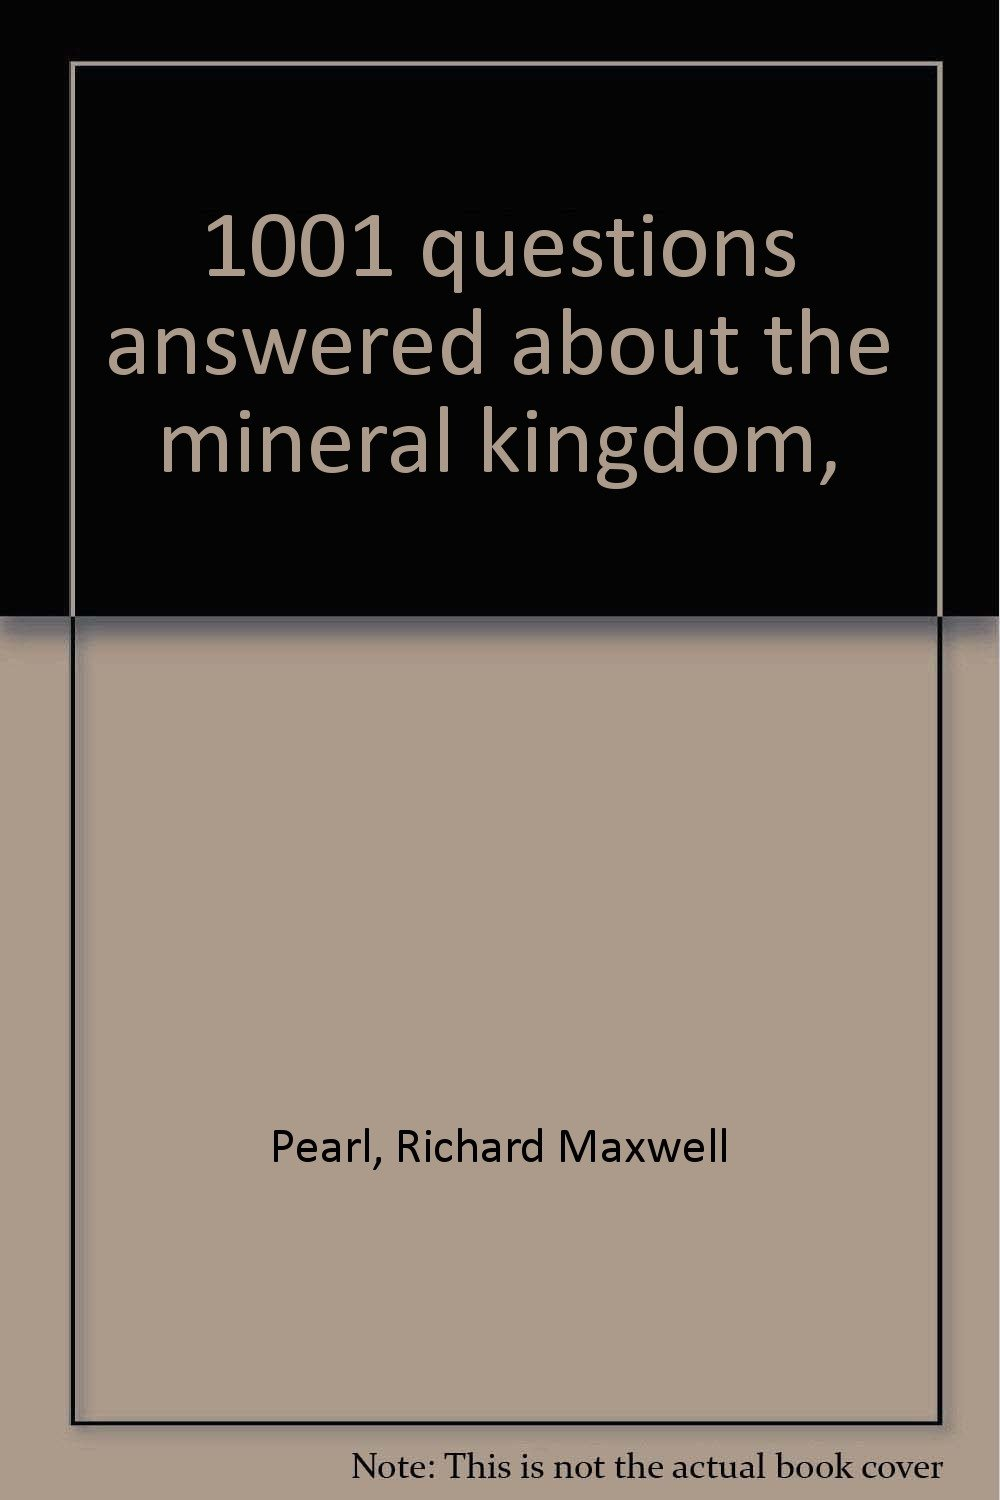 1001 questions answered about the mineral kingdom, : Richard Maxwell Pearl:  Amazon.com: Books